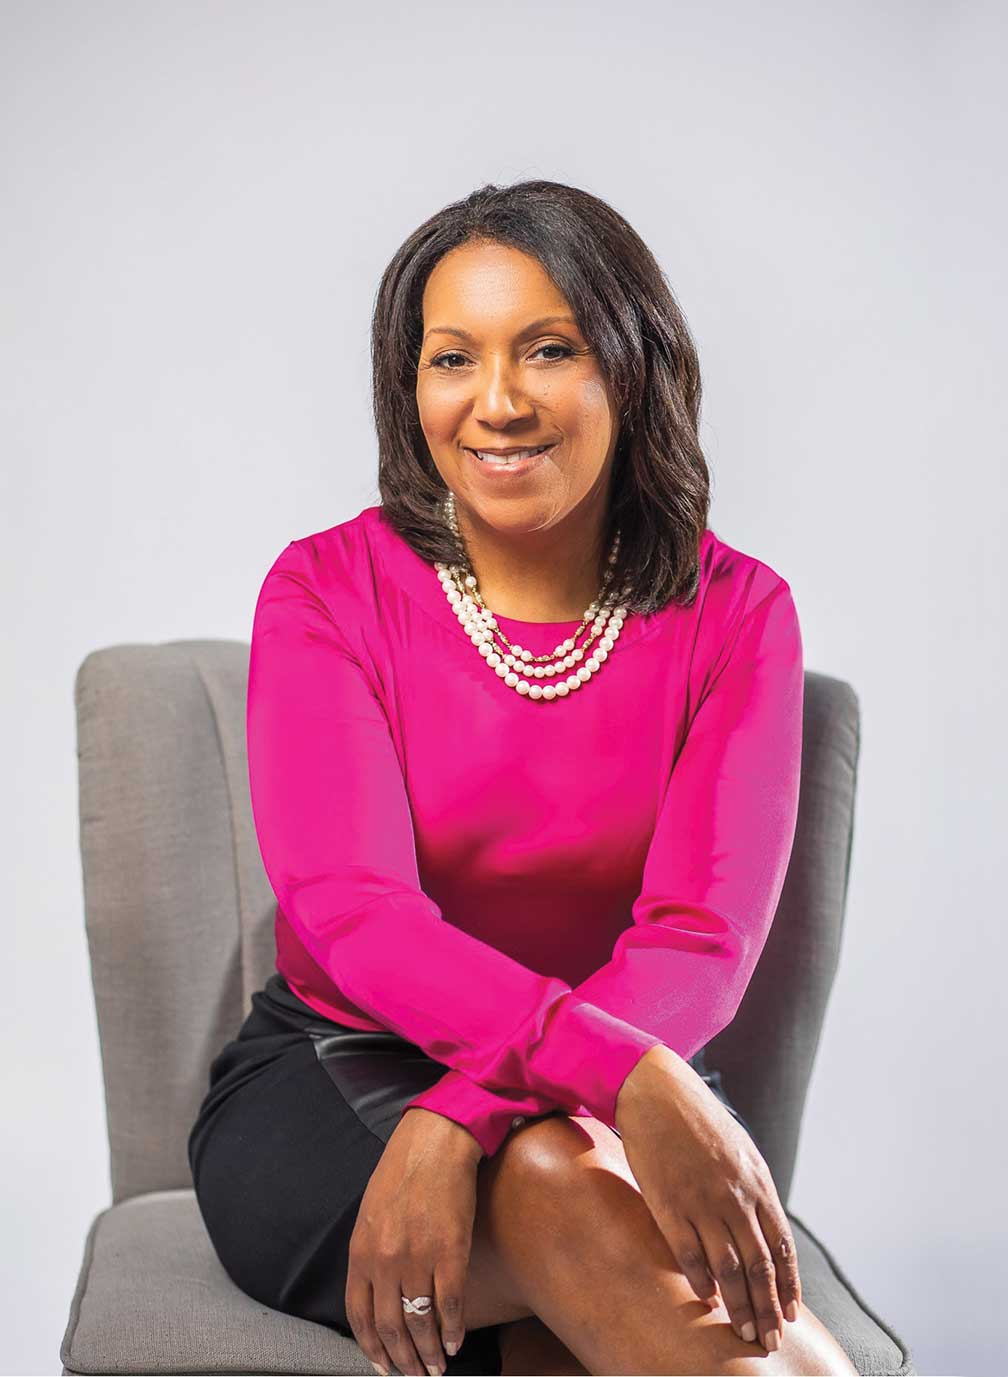 Kimberly Kersey sitting on a desk chair in a bright pink sweater